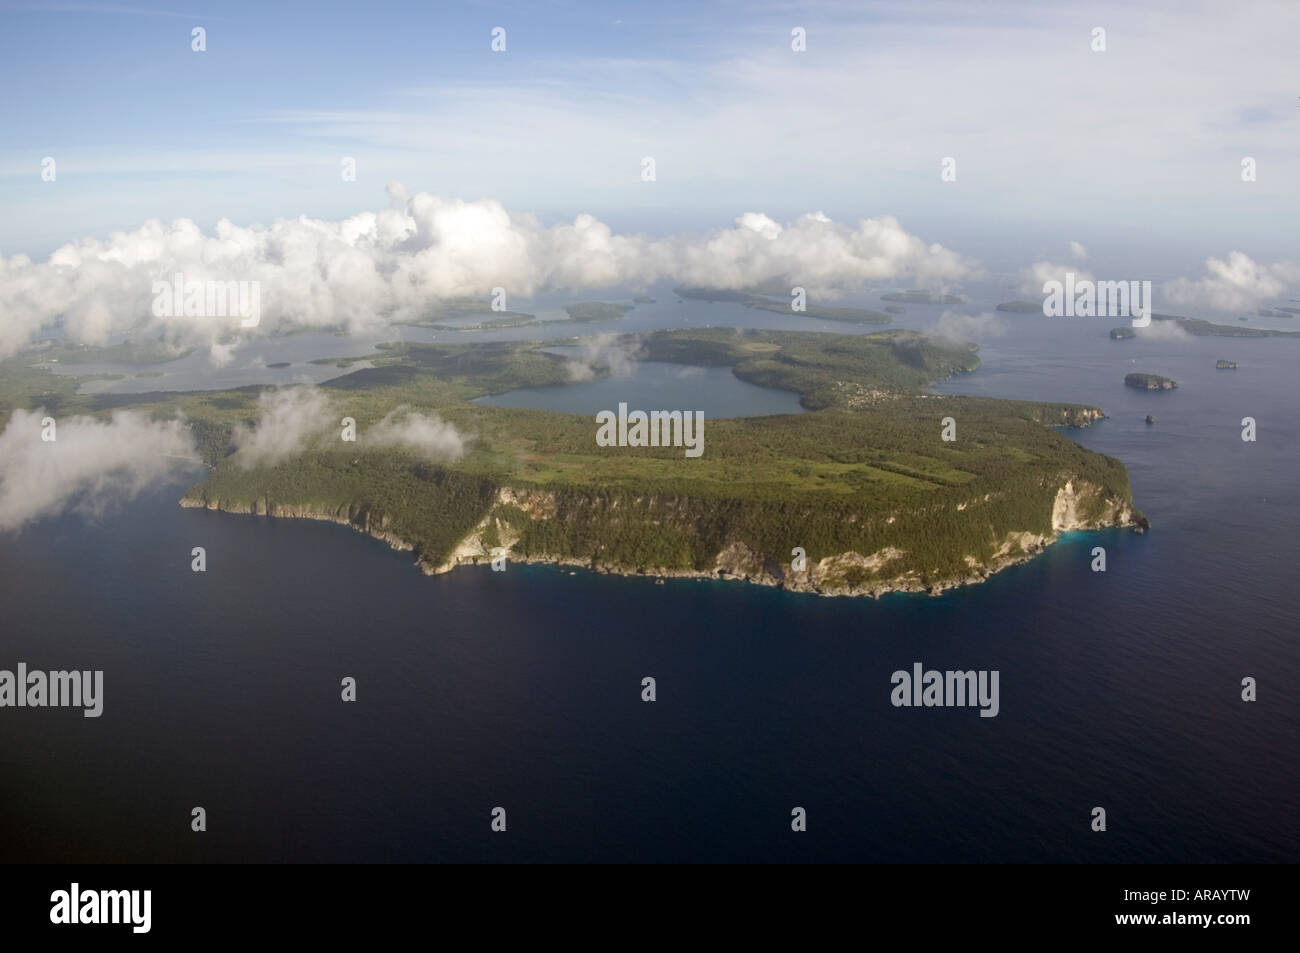 Aerial photograph of Vava u Kingdom of Tonga Vava u attracts whale watchers and sailors from around the world - Stock Image